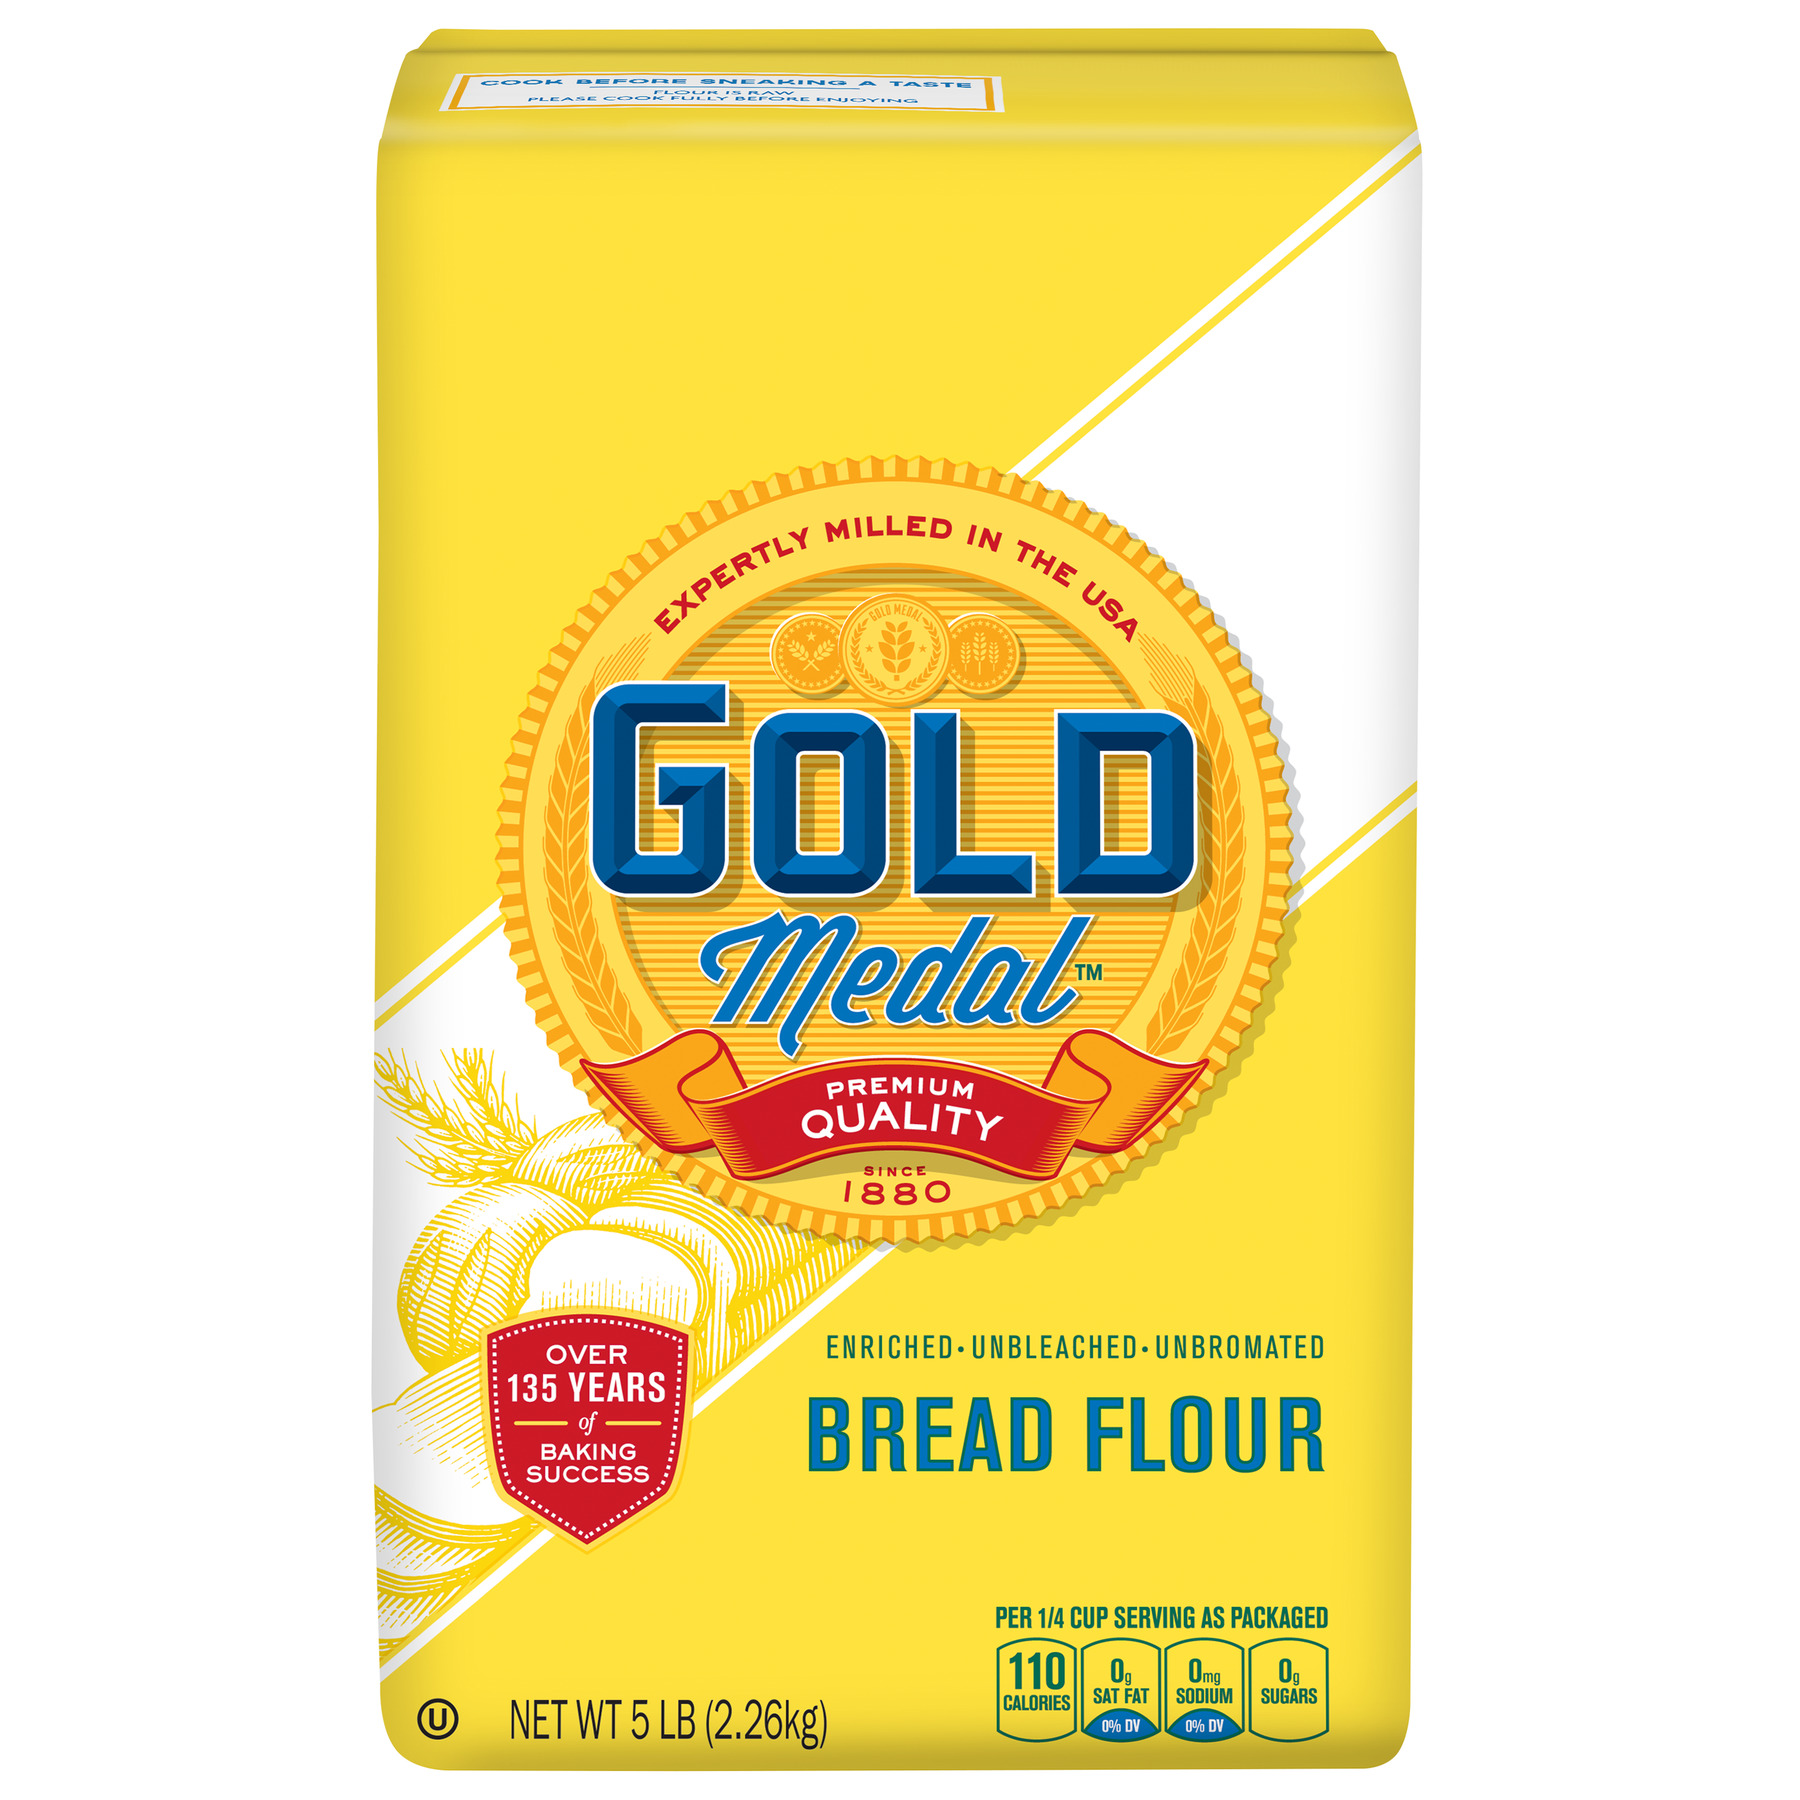 Gold Medal Unbleached Bread Flour, 5 lb Bag